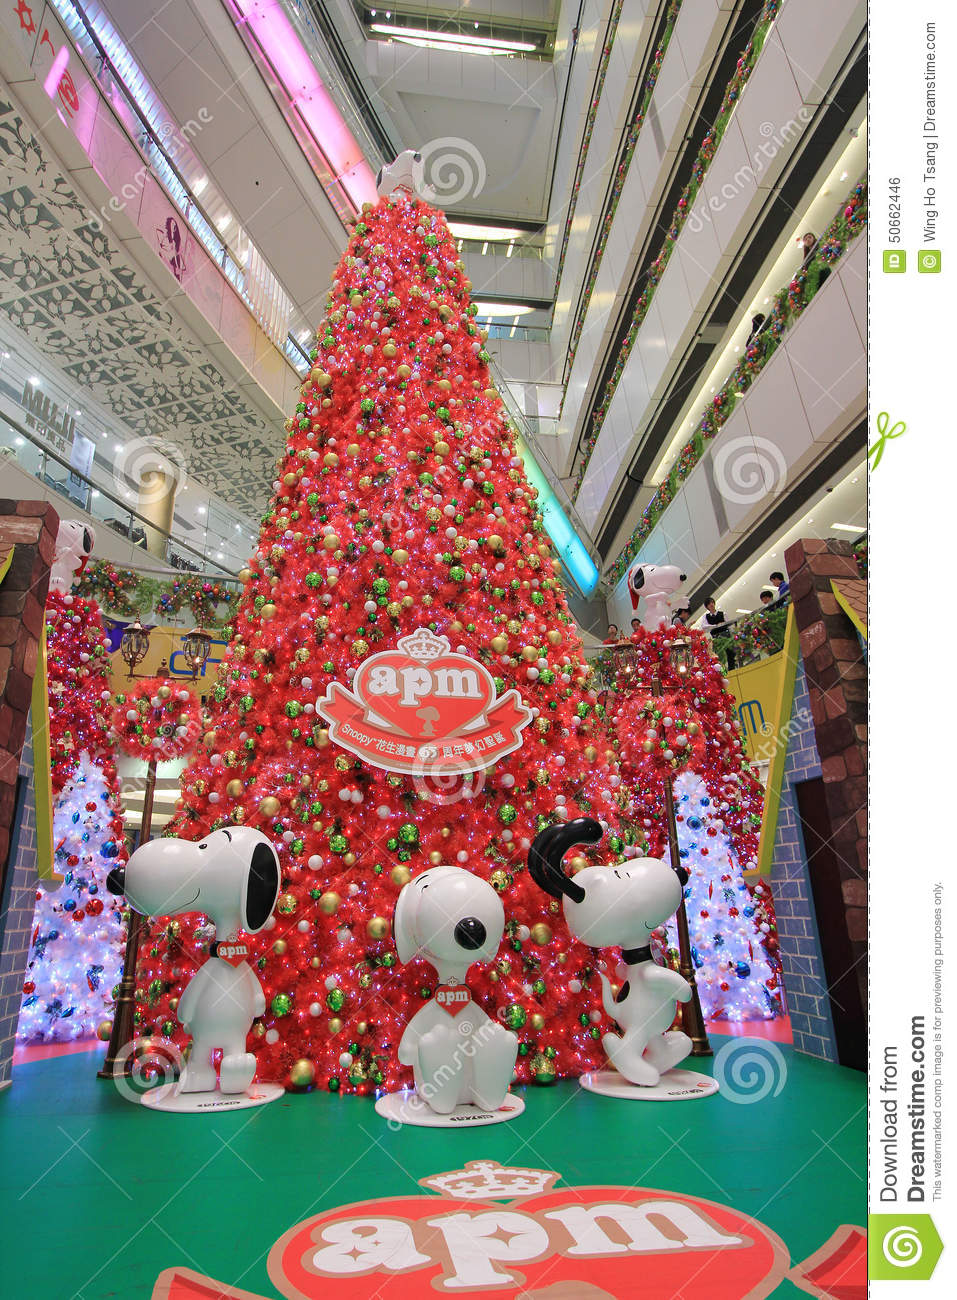 Apm snoopy christmas decoration in hong kong editorial for Christmas decorations online shopping